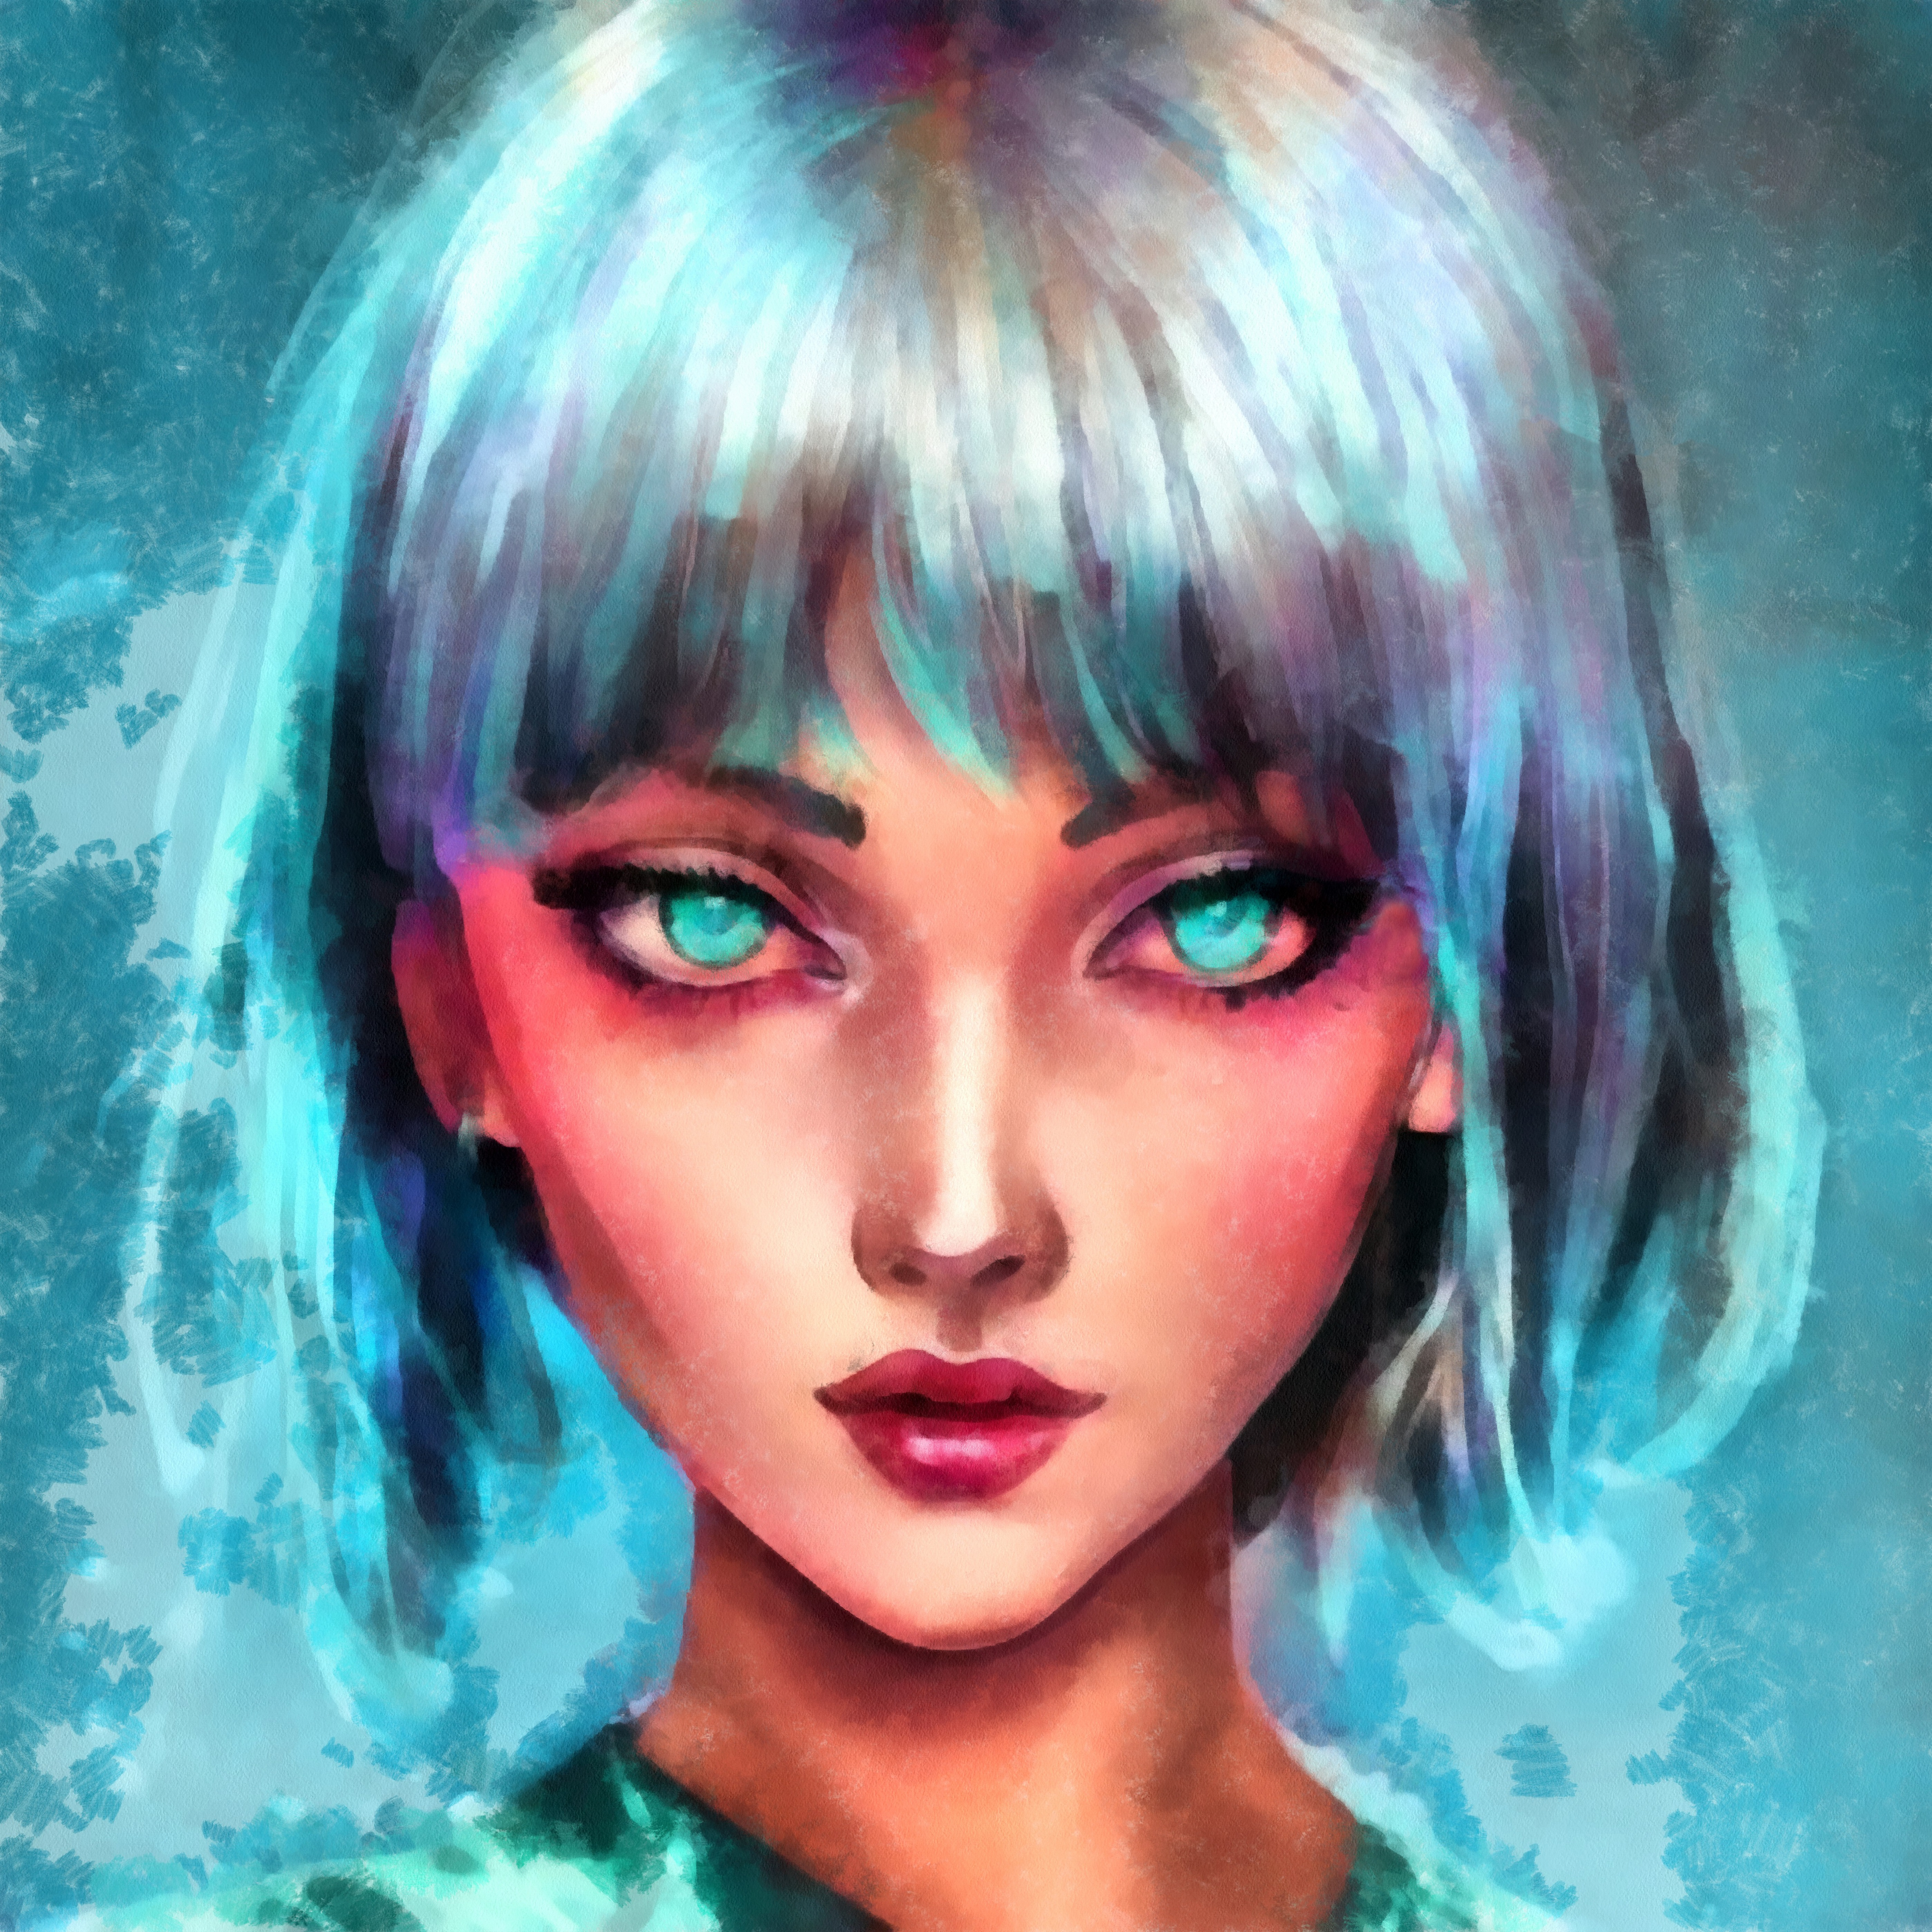 Young Woman Hair Blue Hair Illustration Lips Makeup Colorful Eyes Face Fashion Women Watercolor Port 5590x5590